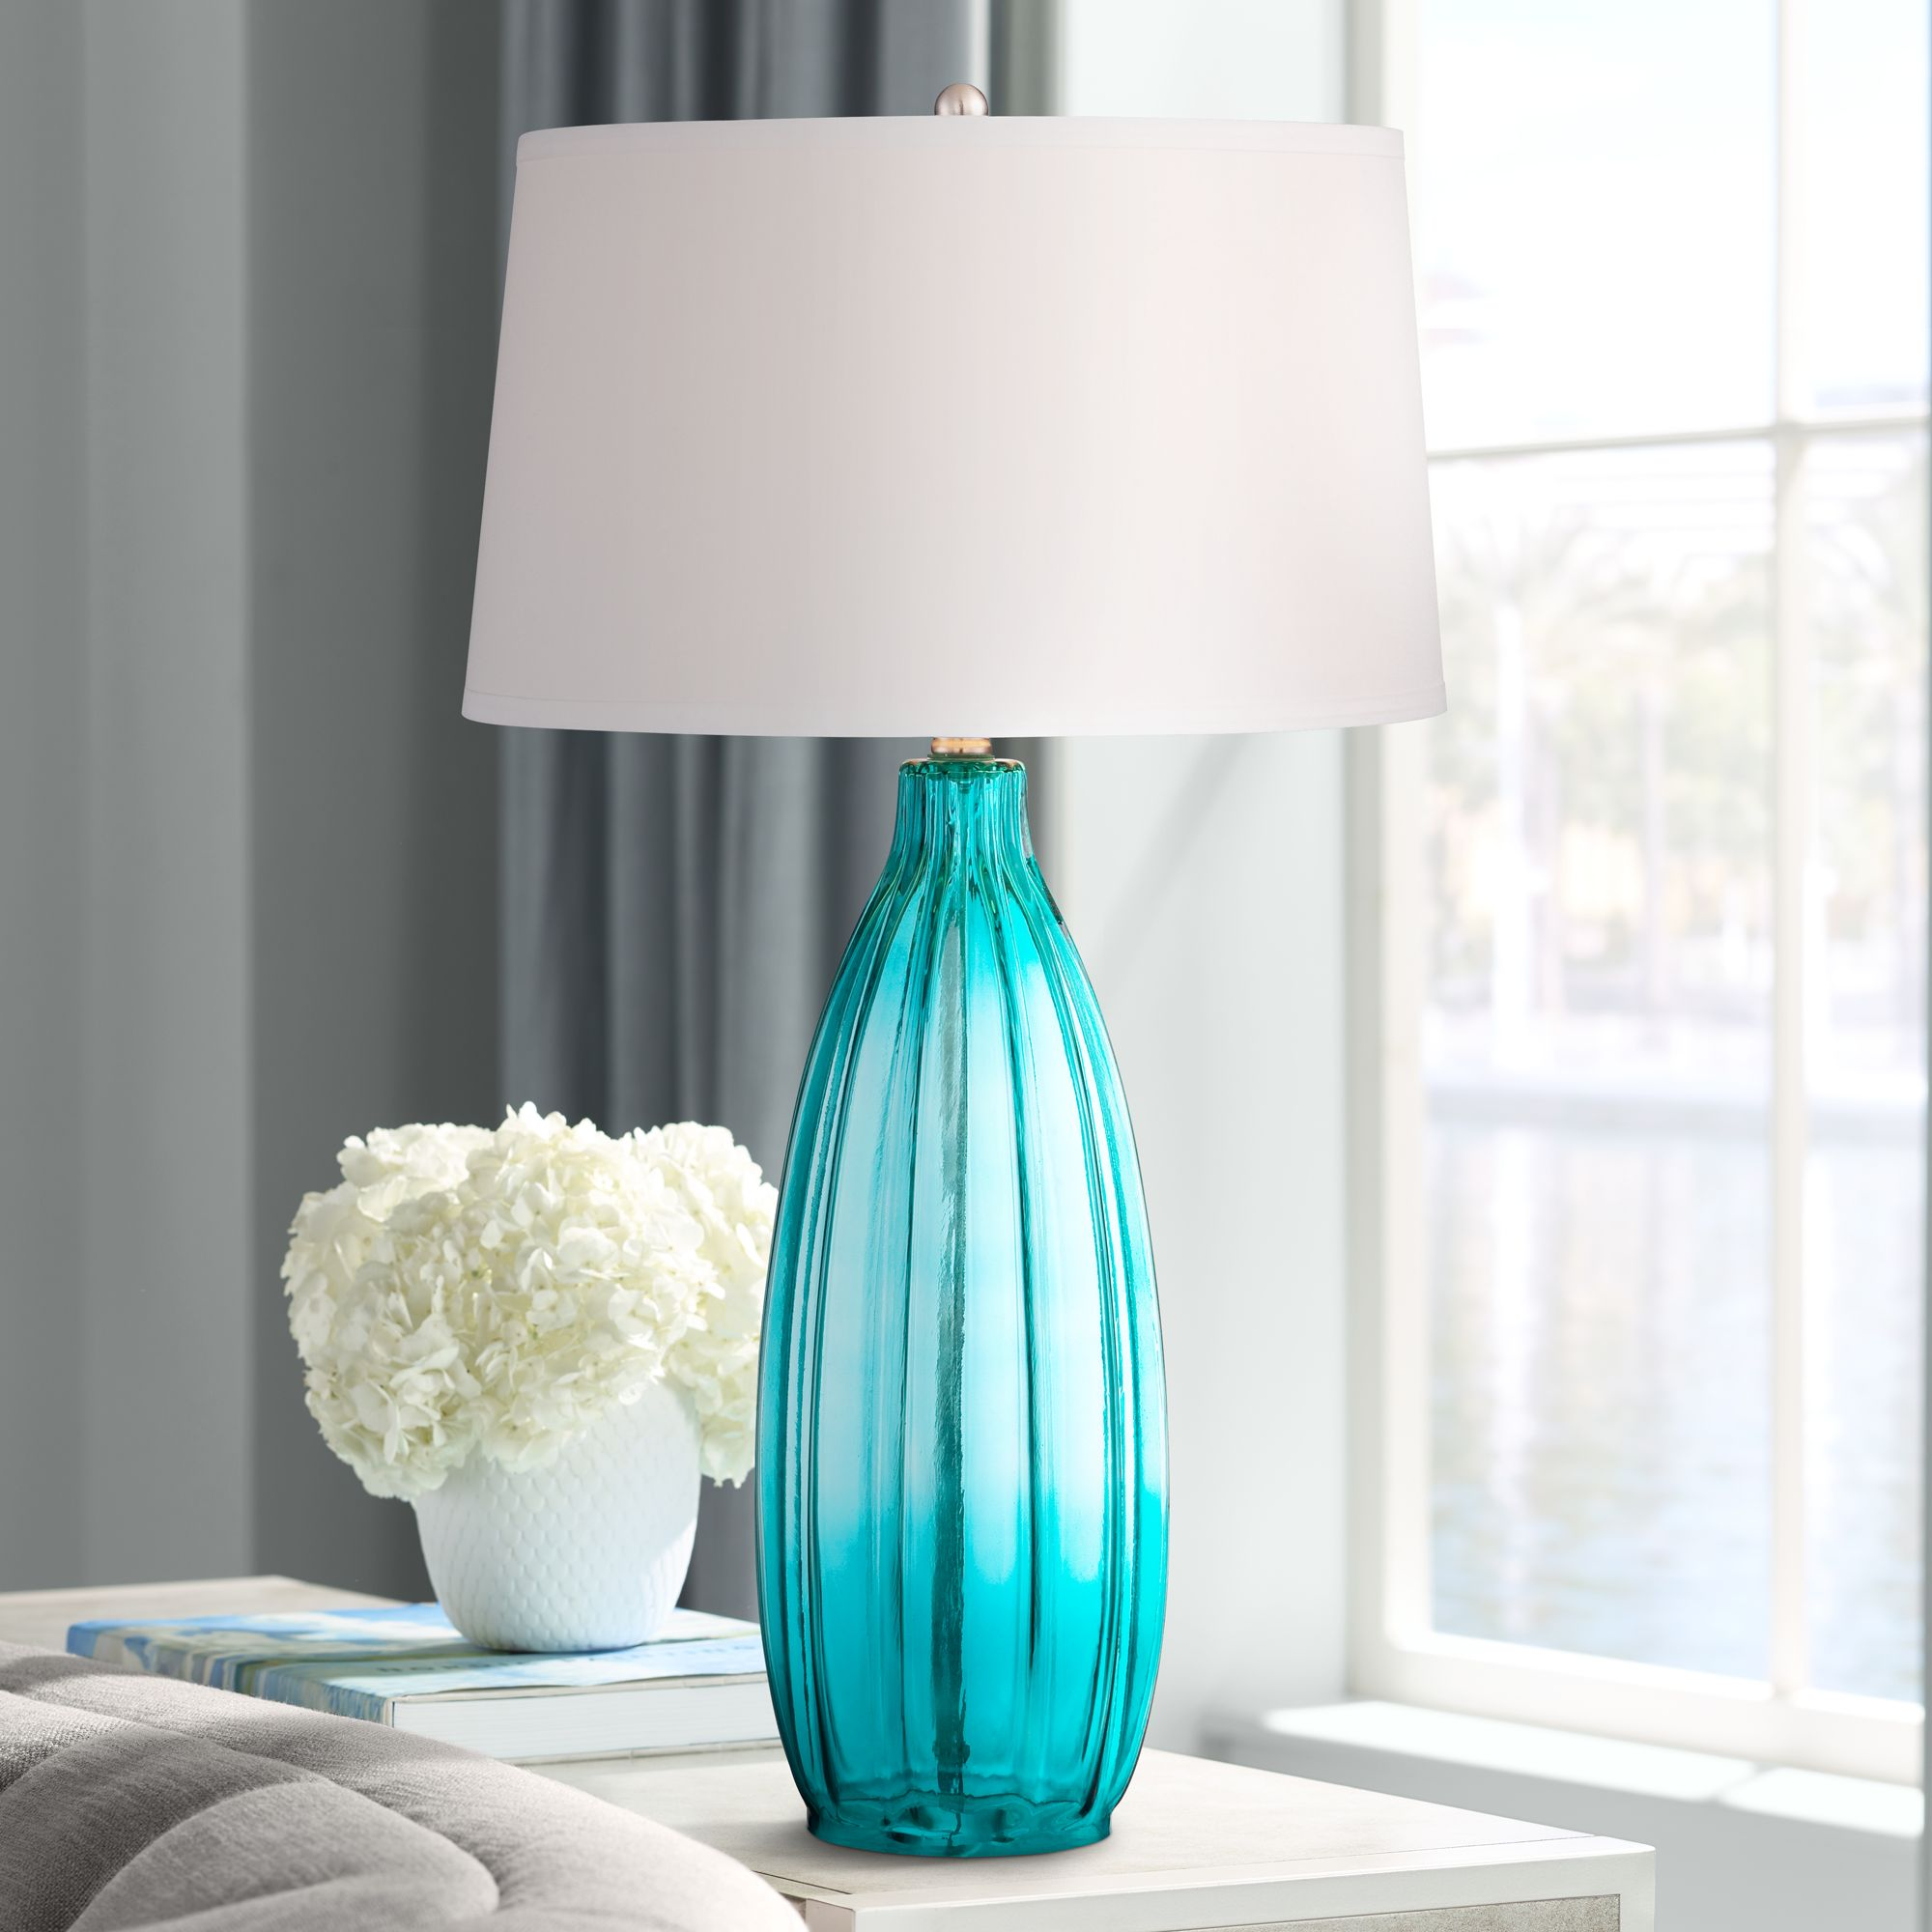 Ultra Modern Table Lamp Details About Modern Table Lamp Clear Blue Fluted Glass White Shade For Living Room Bedroom